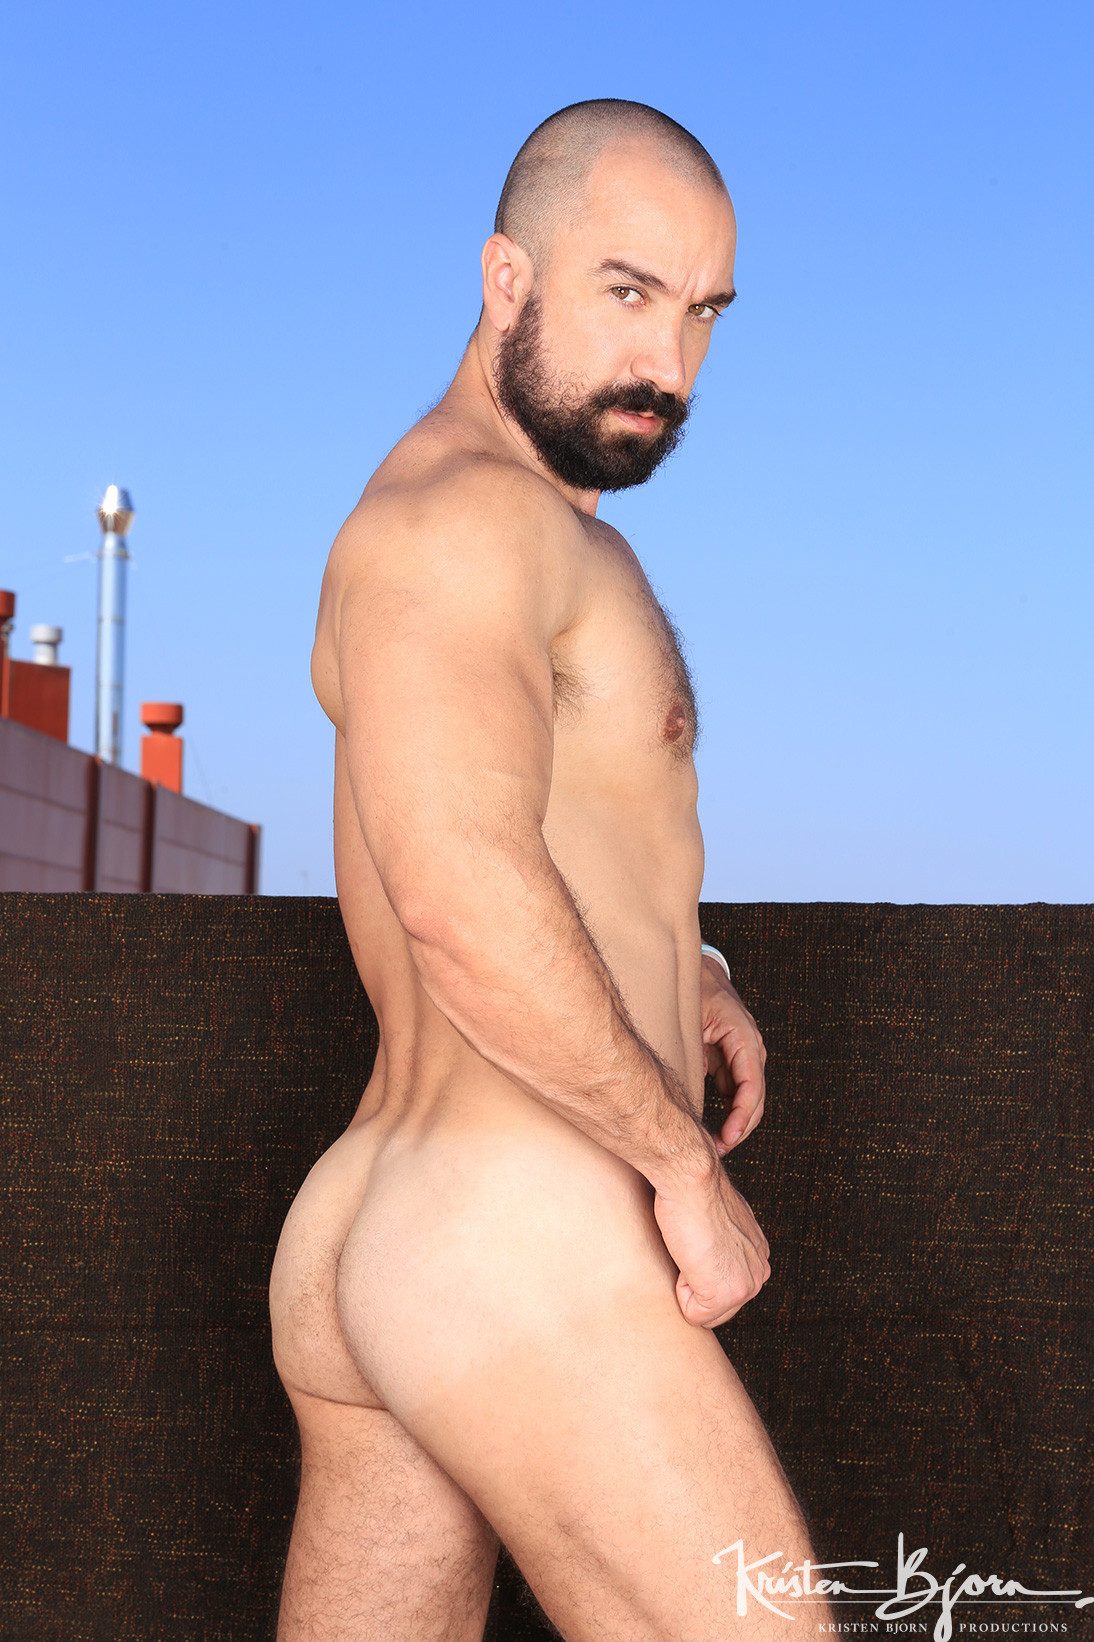 Casting Couch #368: Manuel Olveyra, Ricky Piedra - Gallery